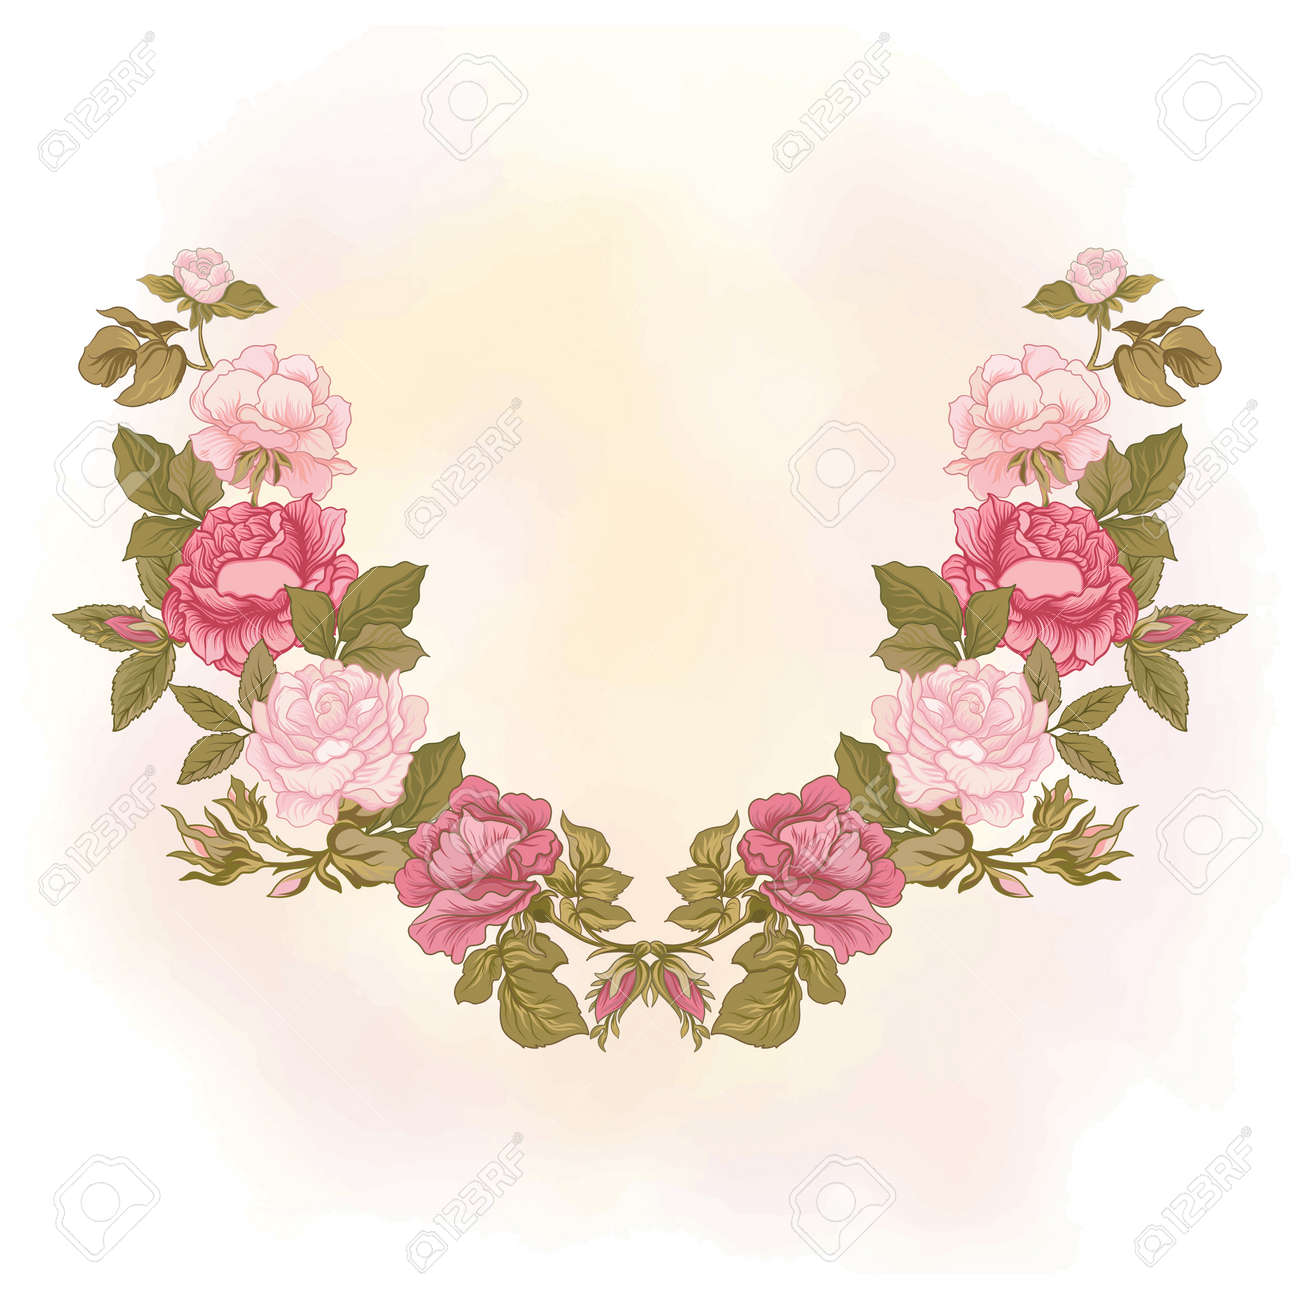 neck line embroidery designs